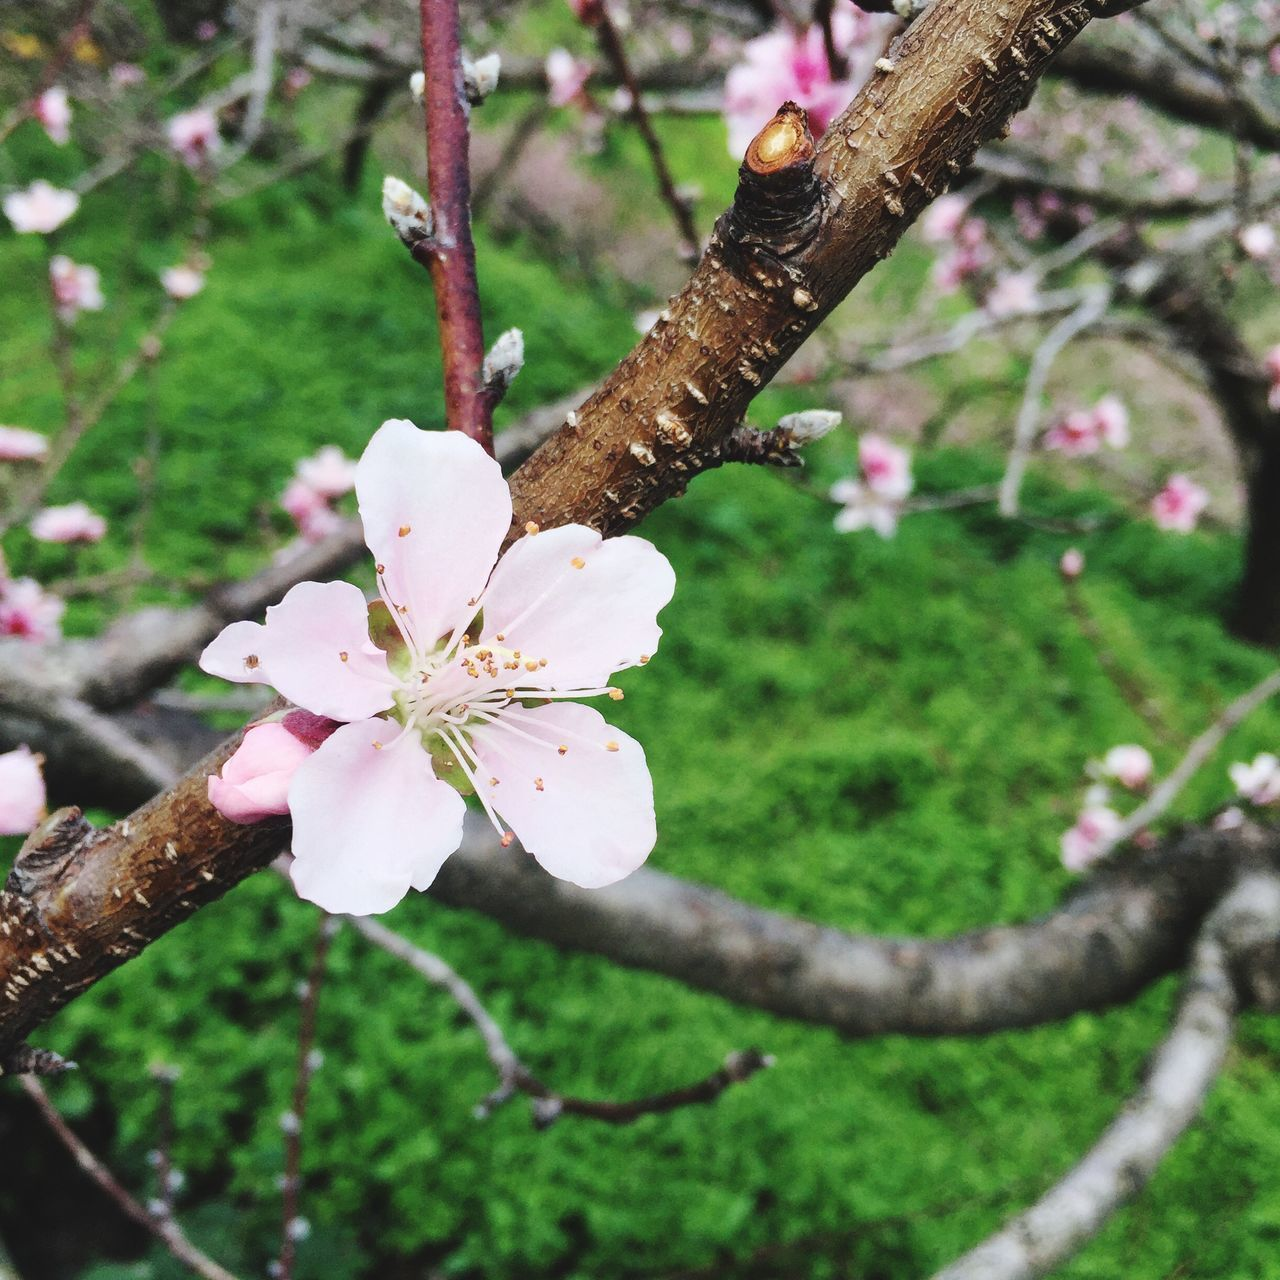 Flower Fragility Growth Nature Petal Freshness Day Outdoors Focus On Foreground Beauty In Nature Tree Close-up Flower Head Branch Plant No People